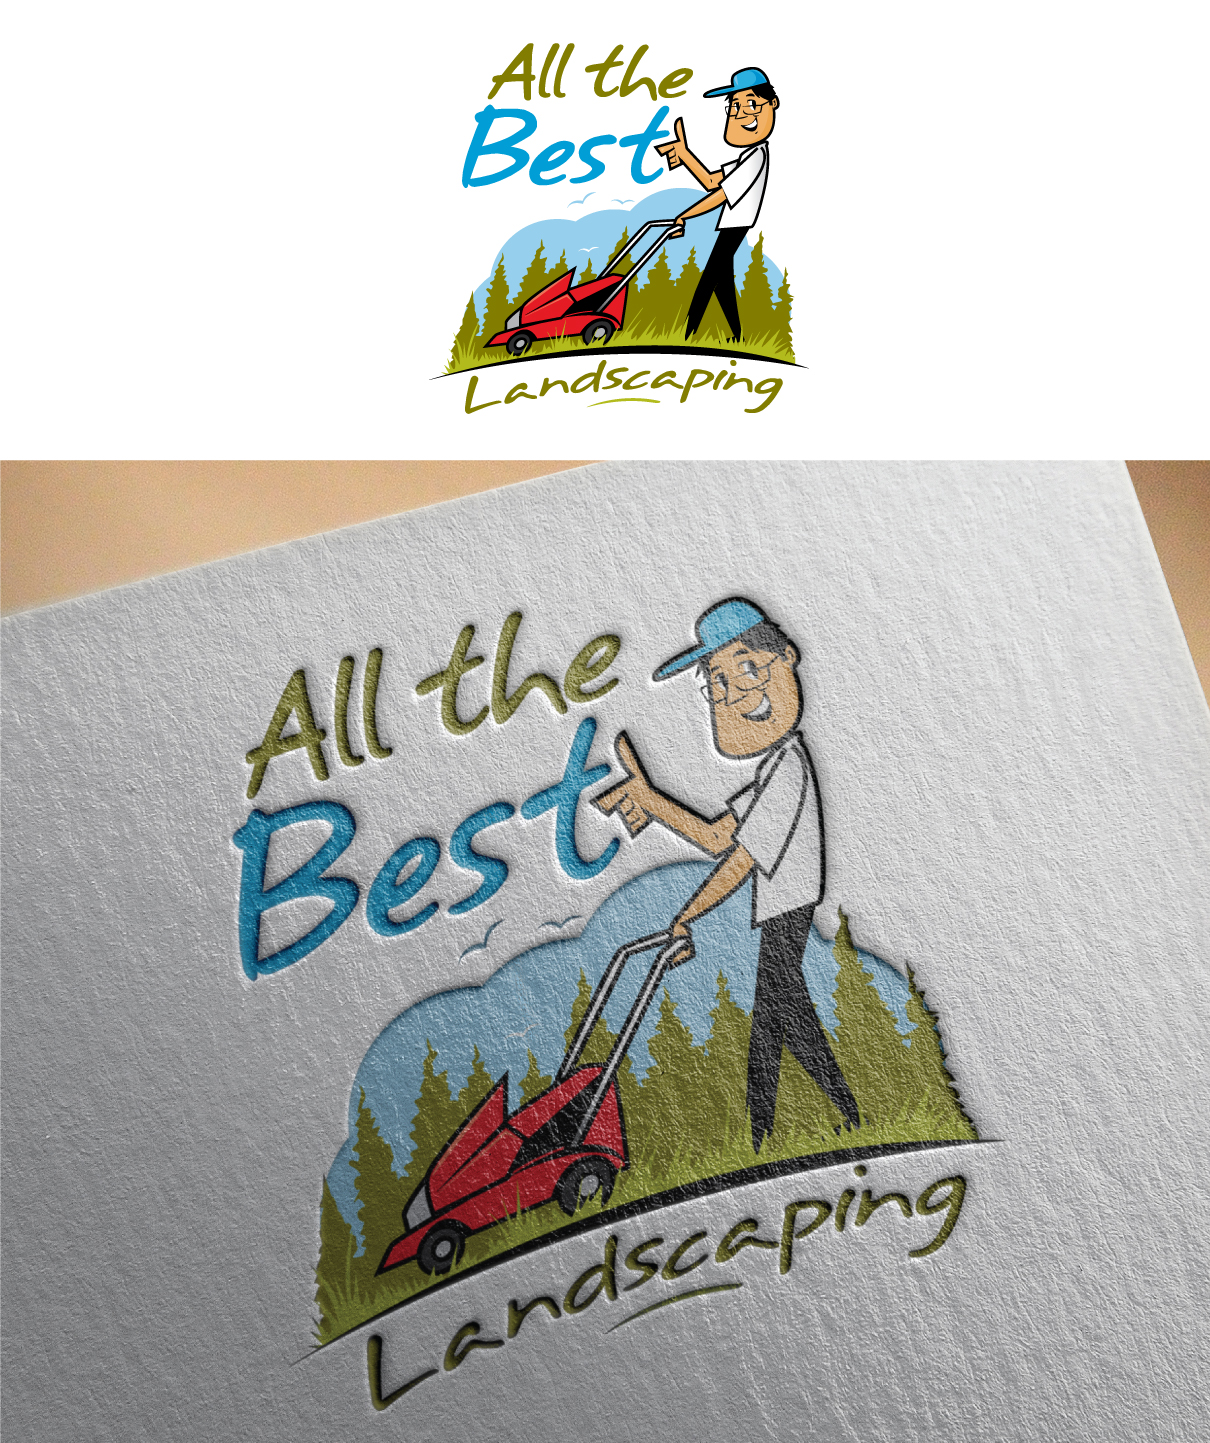 All the Best Landscaping_1a